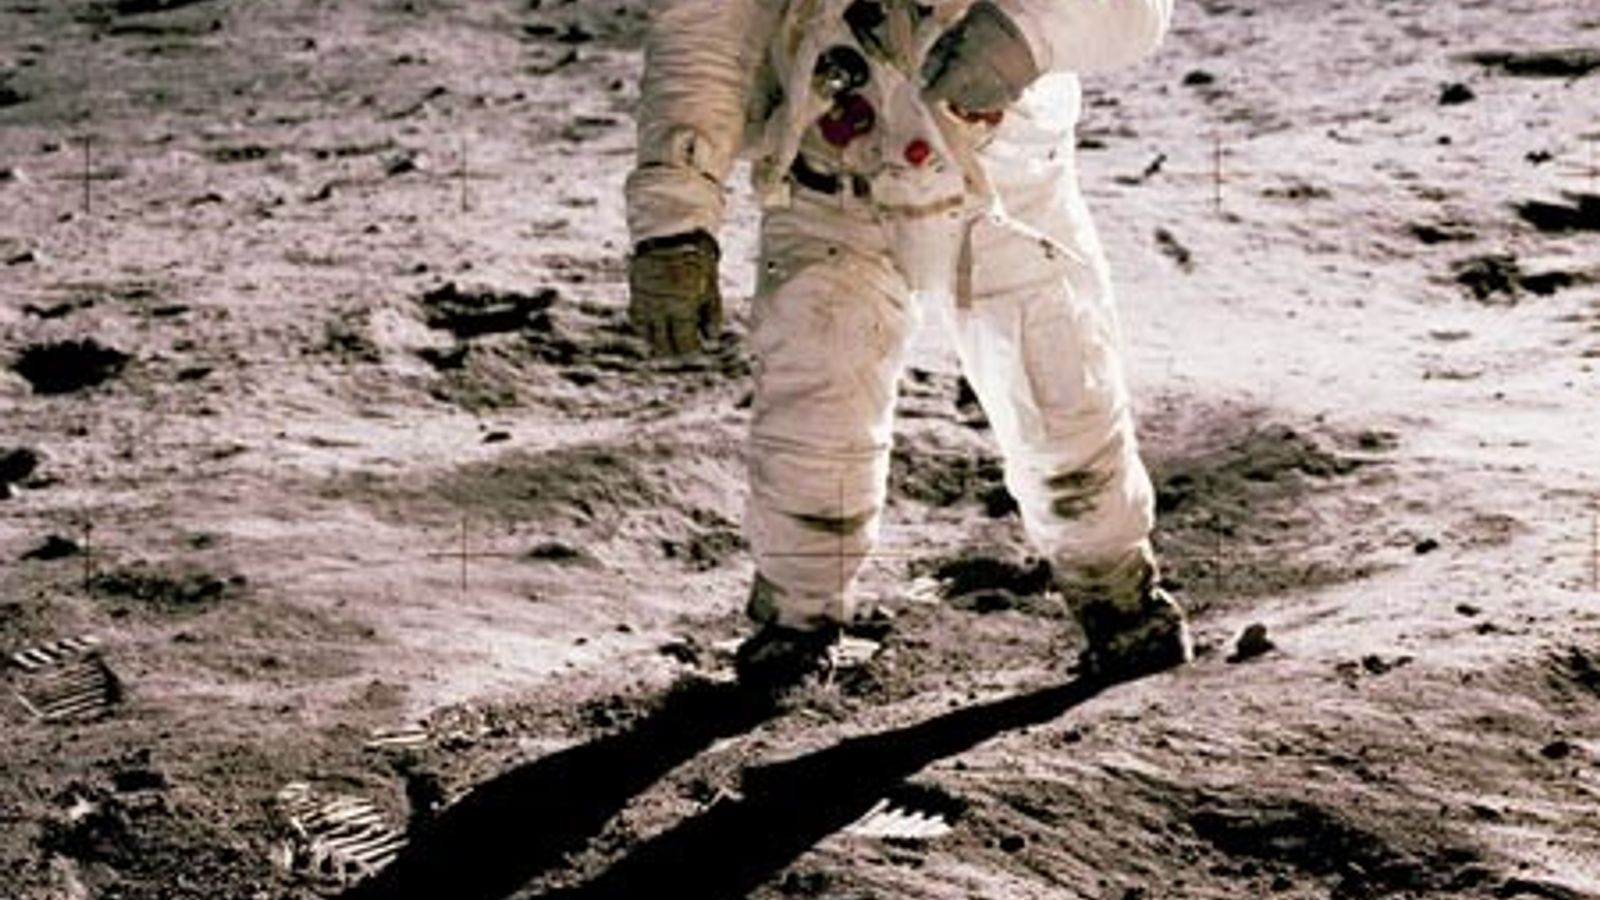 Apollo 11 astronaut Buzz Aldrin became the second person to set foot on the moon on ...